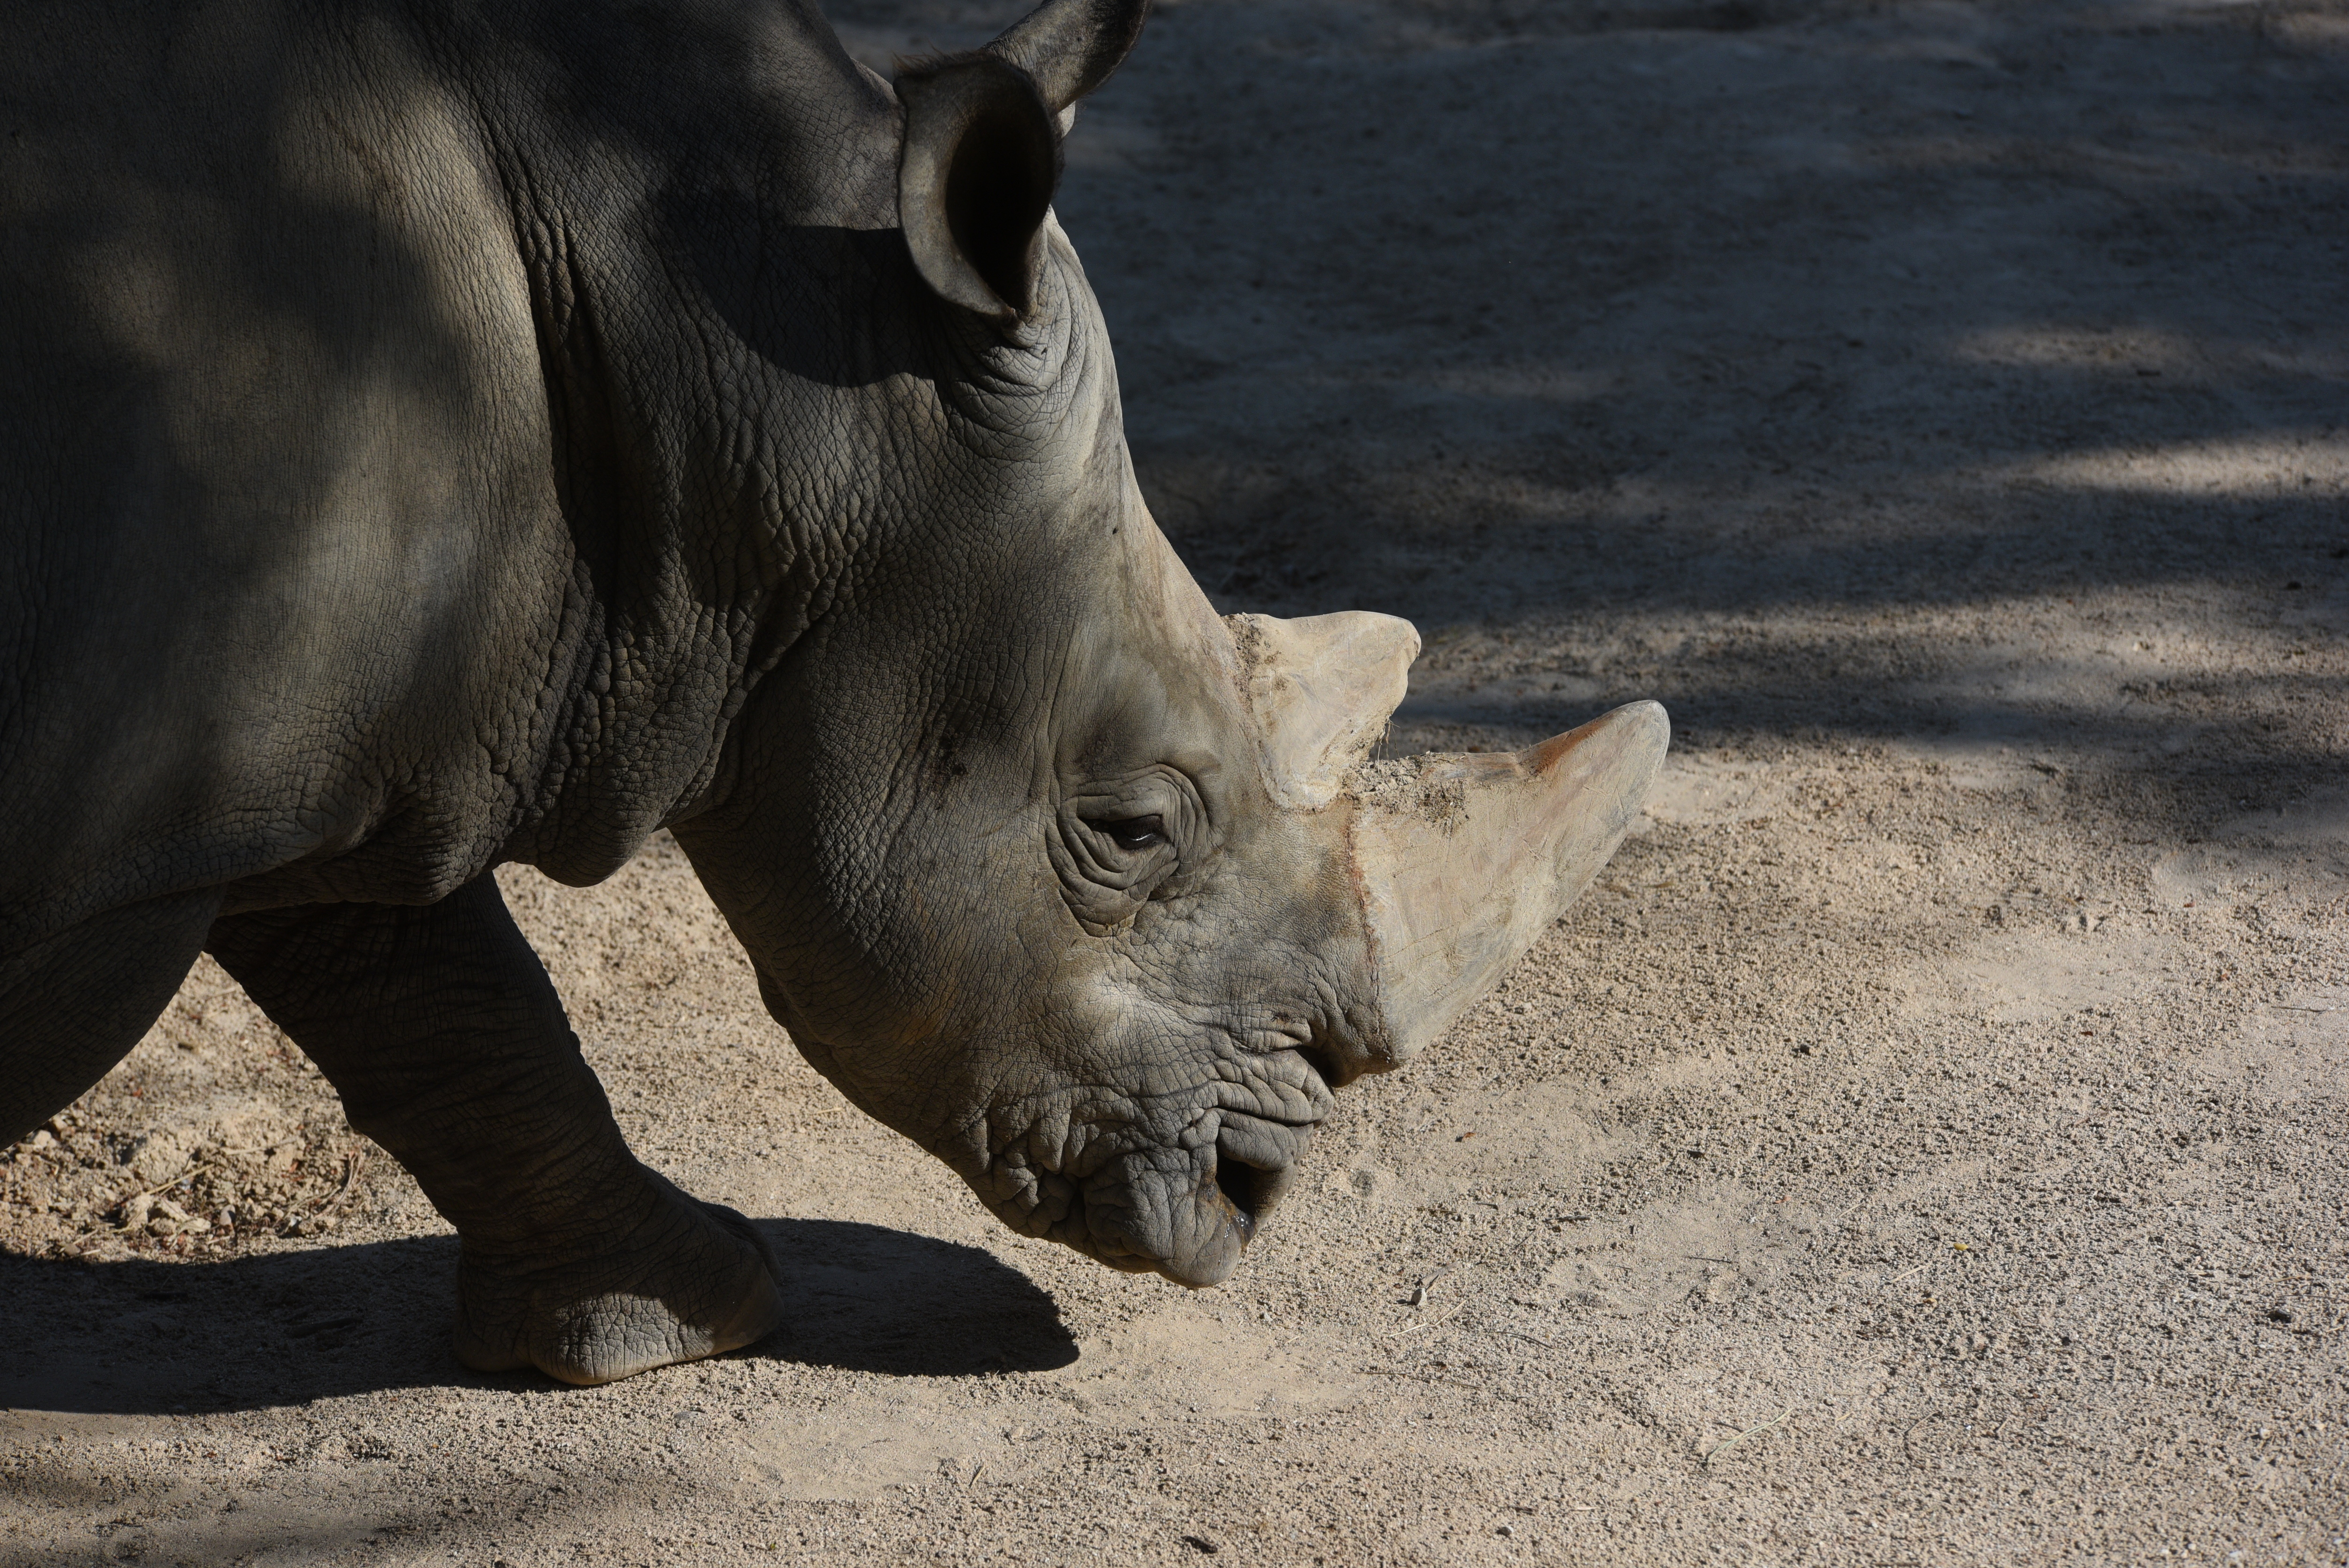 A white rhinoceros cools off in the water in her enclosure.